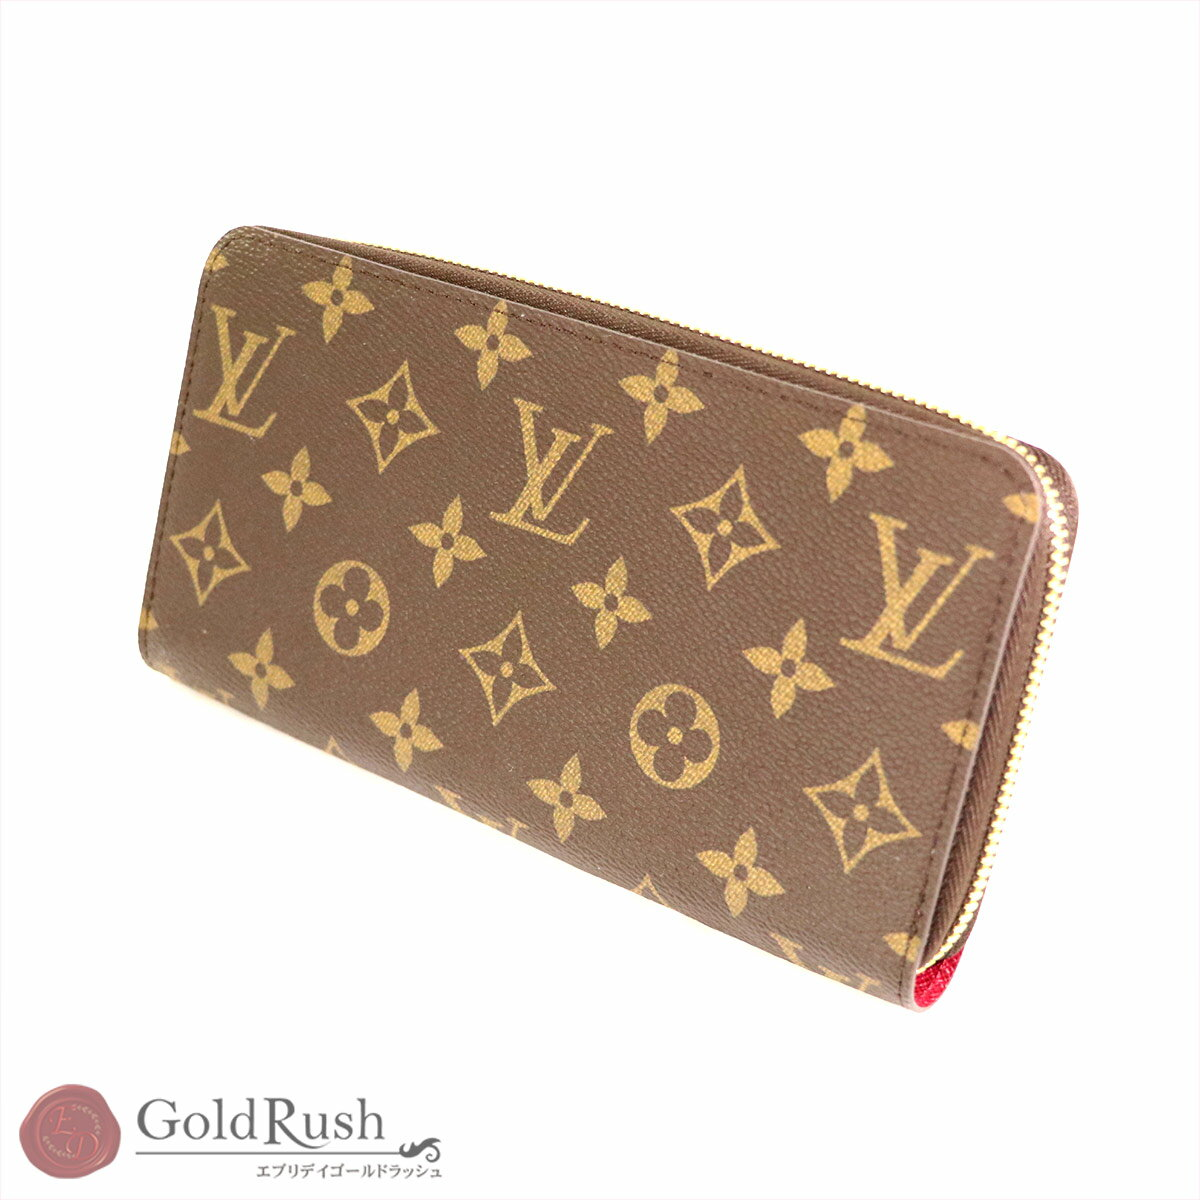 4d9c0d0fe671a8 ルイヴィトン LOUIS VUITTON モノグラム ジッピーウォレット 長財布 ...